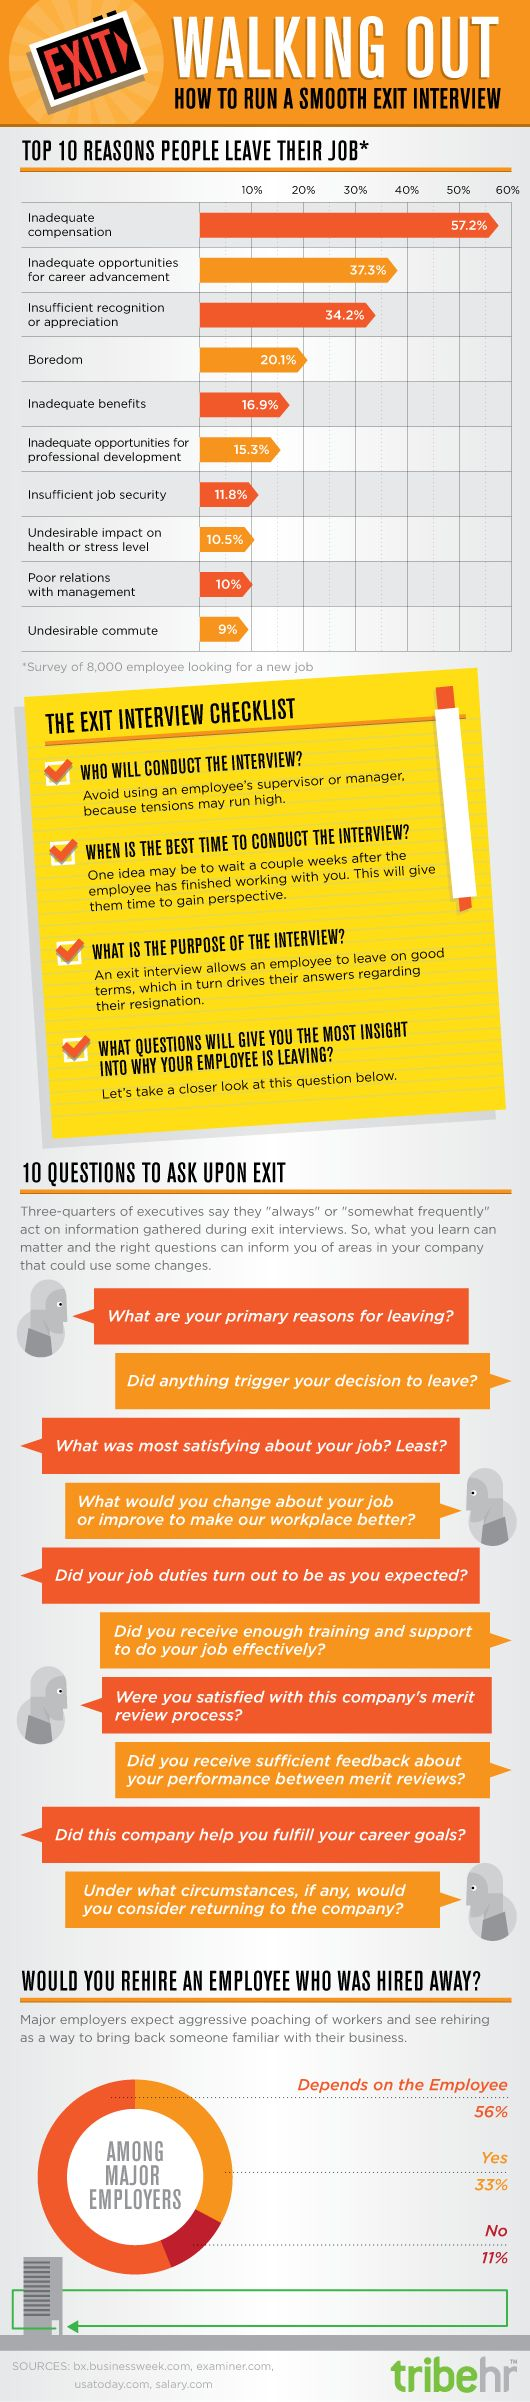 Exit Walking Out How To Run A Smooth Exit Interview